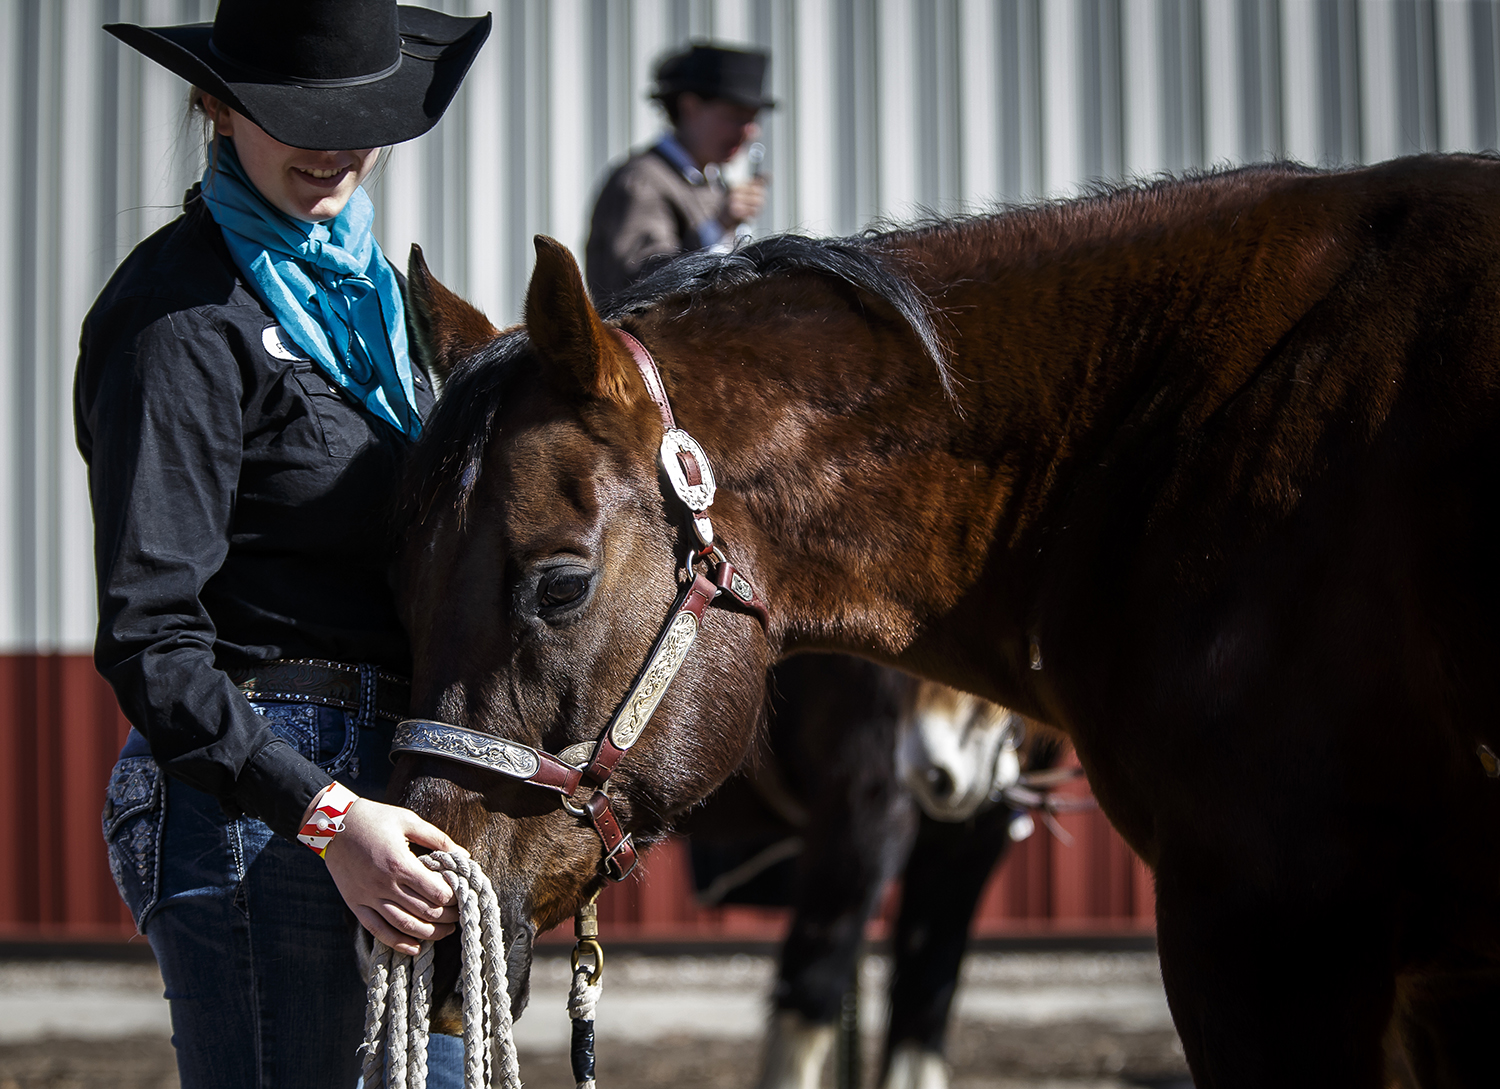 Taylor Warren, of Matoon, Ill., gives Freckles, an American quarter horse, a nose rub while they help show the AculIfe Patches used for safe and natural pain relief and quality of life for horses during the 2018 Illinois Horse Fair at the Illinois State Fairgrounds, Saturday, March 3, 2018, in Springfield, Ill. [Justin L. Fowler/The State Journal-Register]